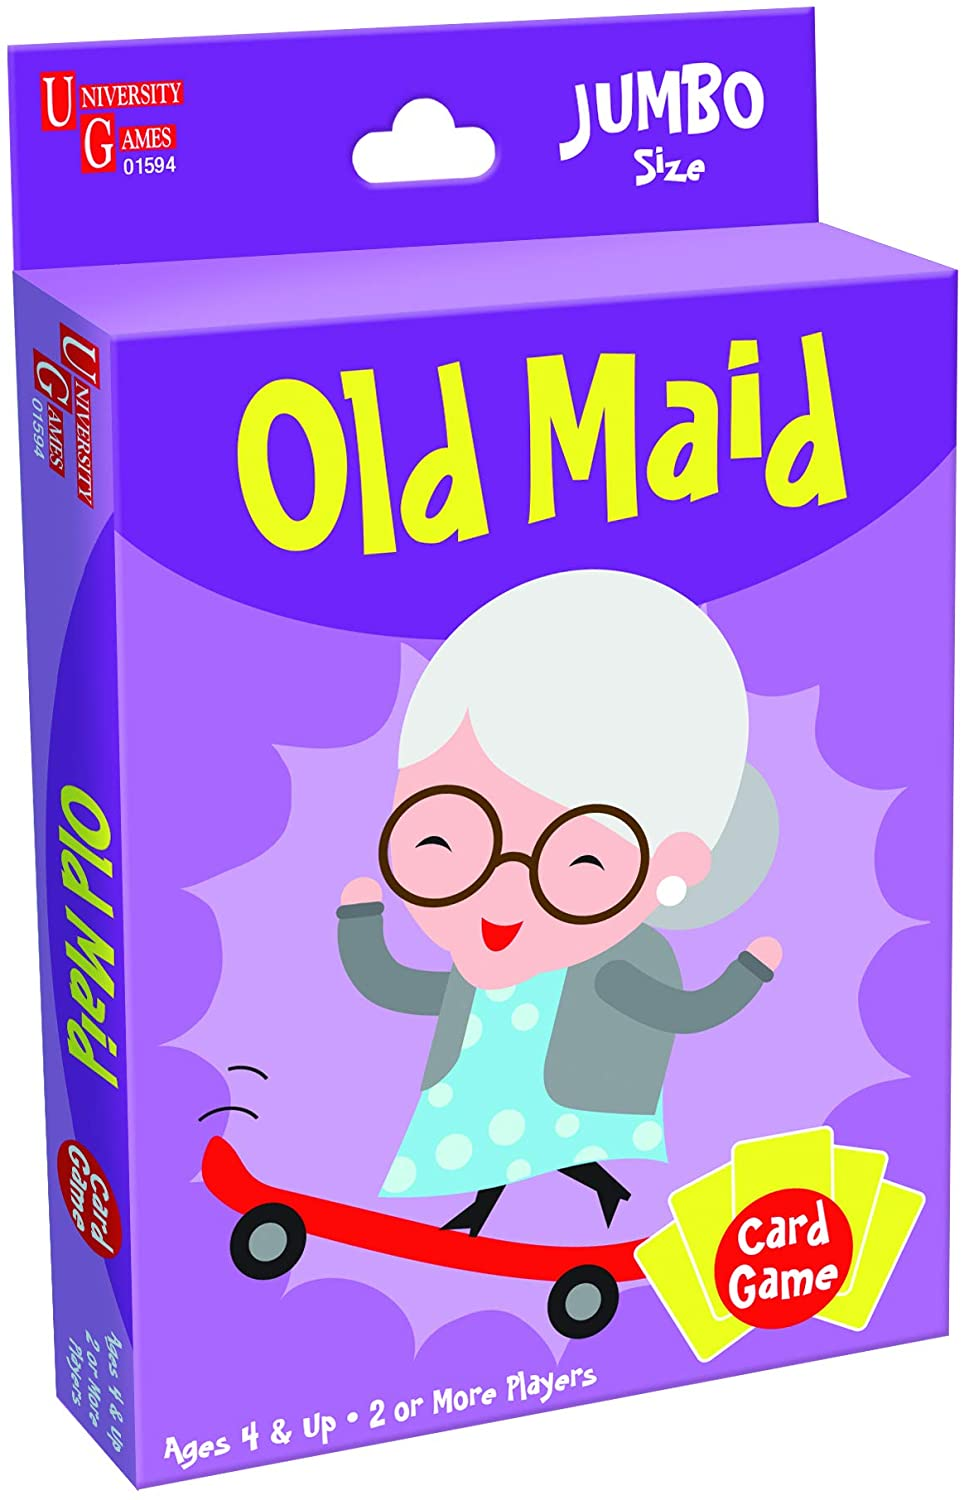 University Games 1407 Old Maid Card Game, Jumbo Size